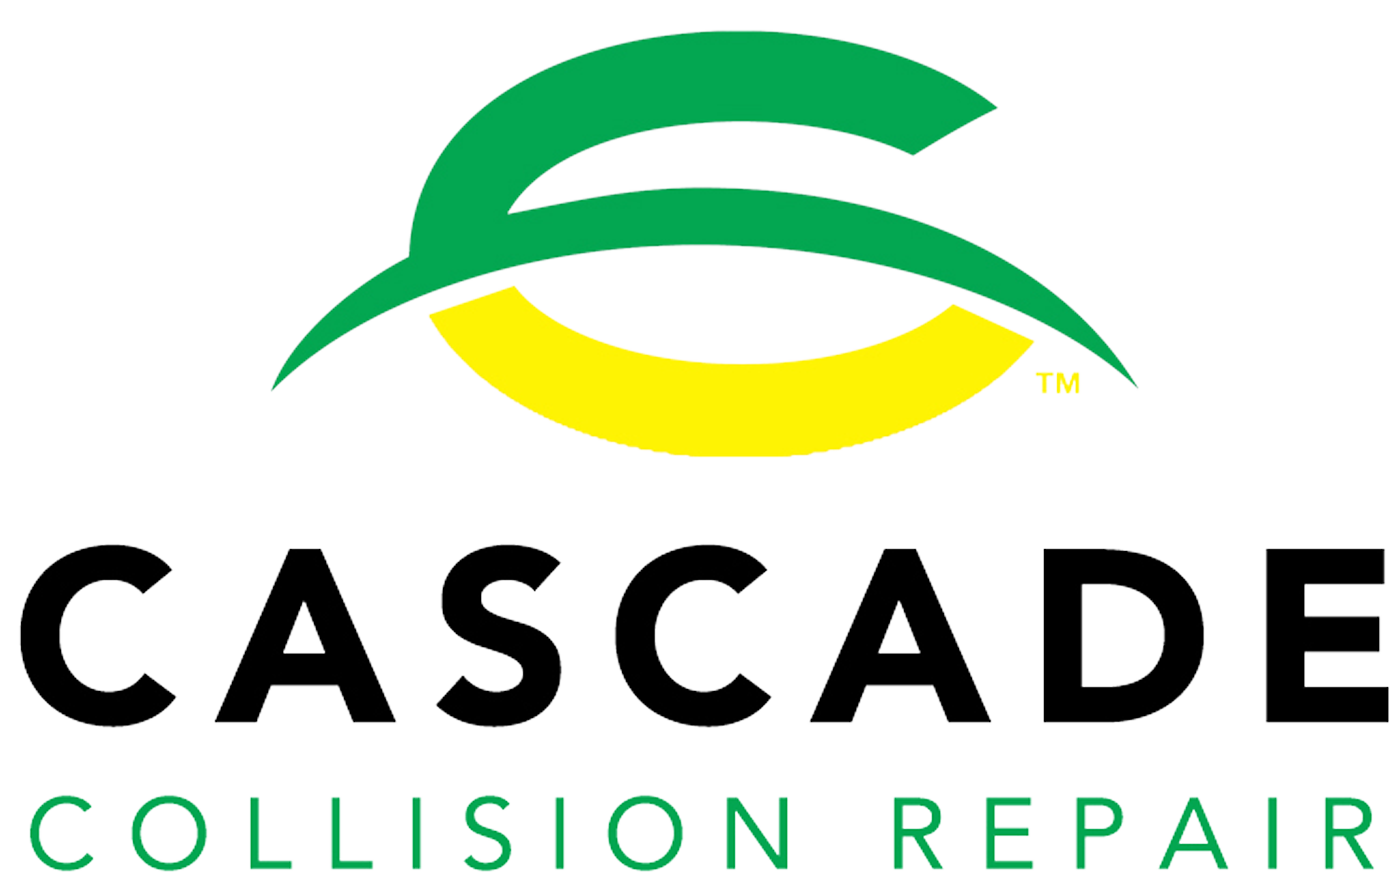 cascade-collision-repair.png